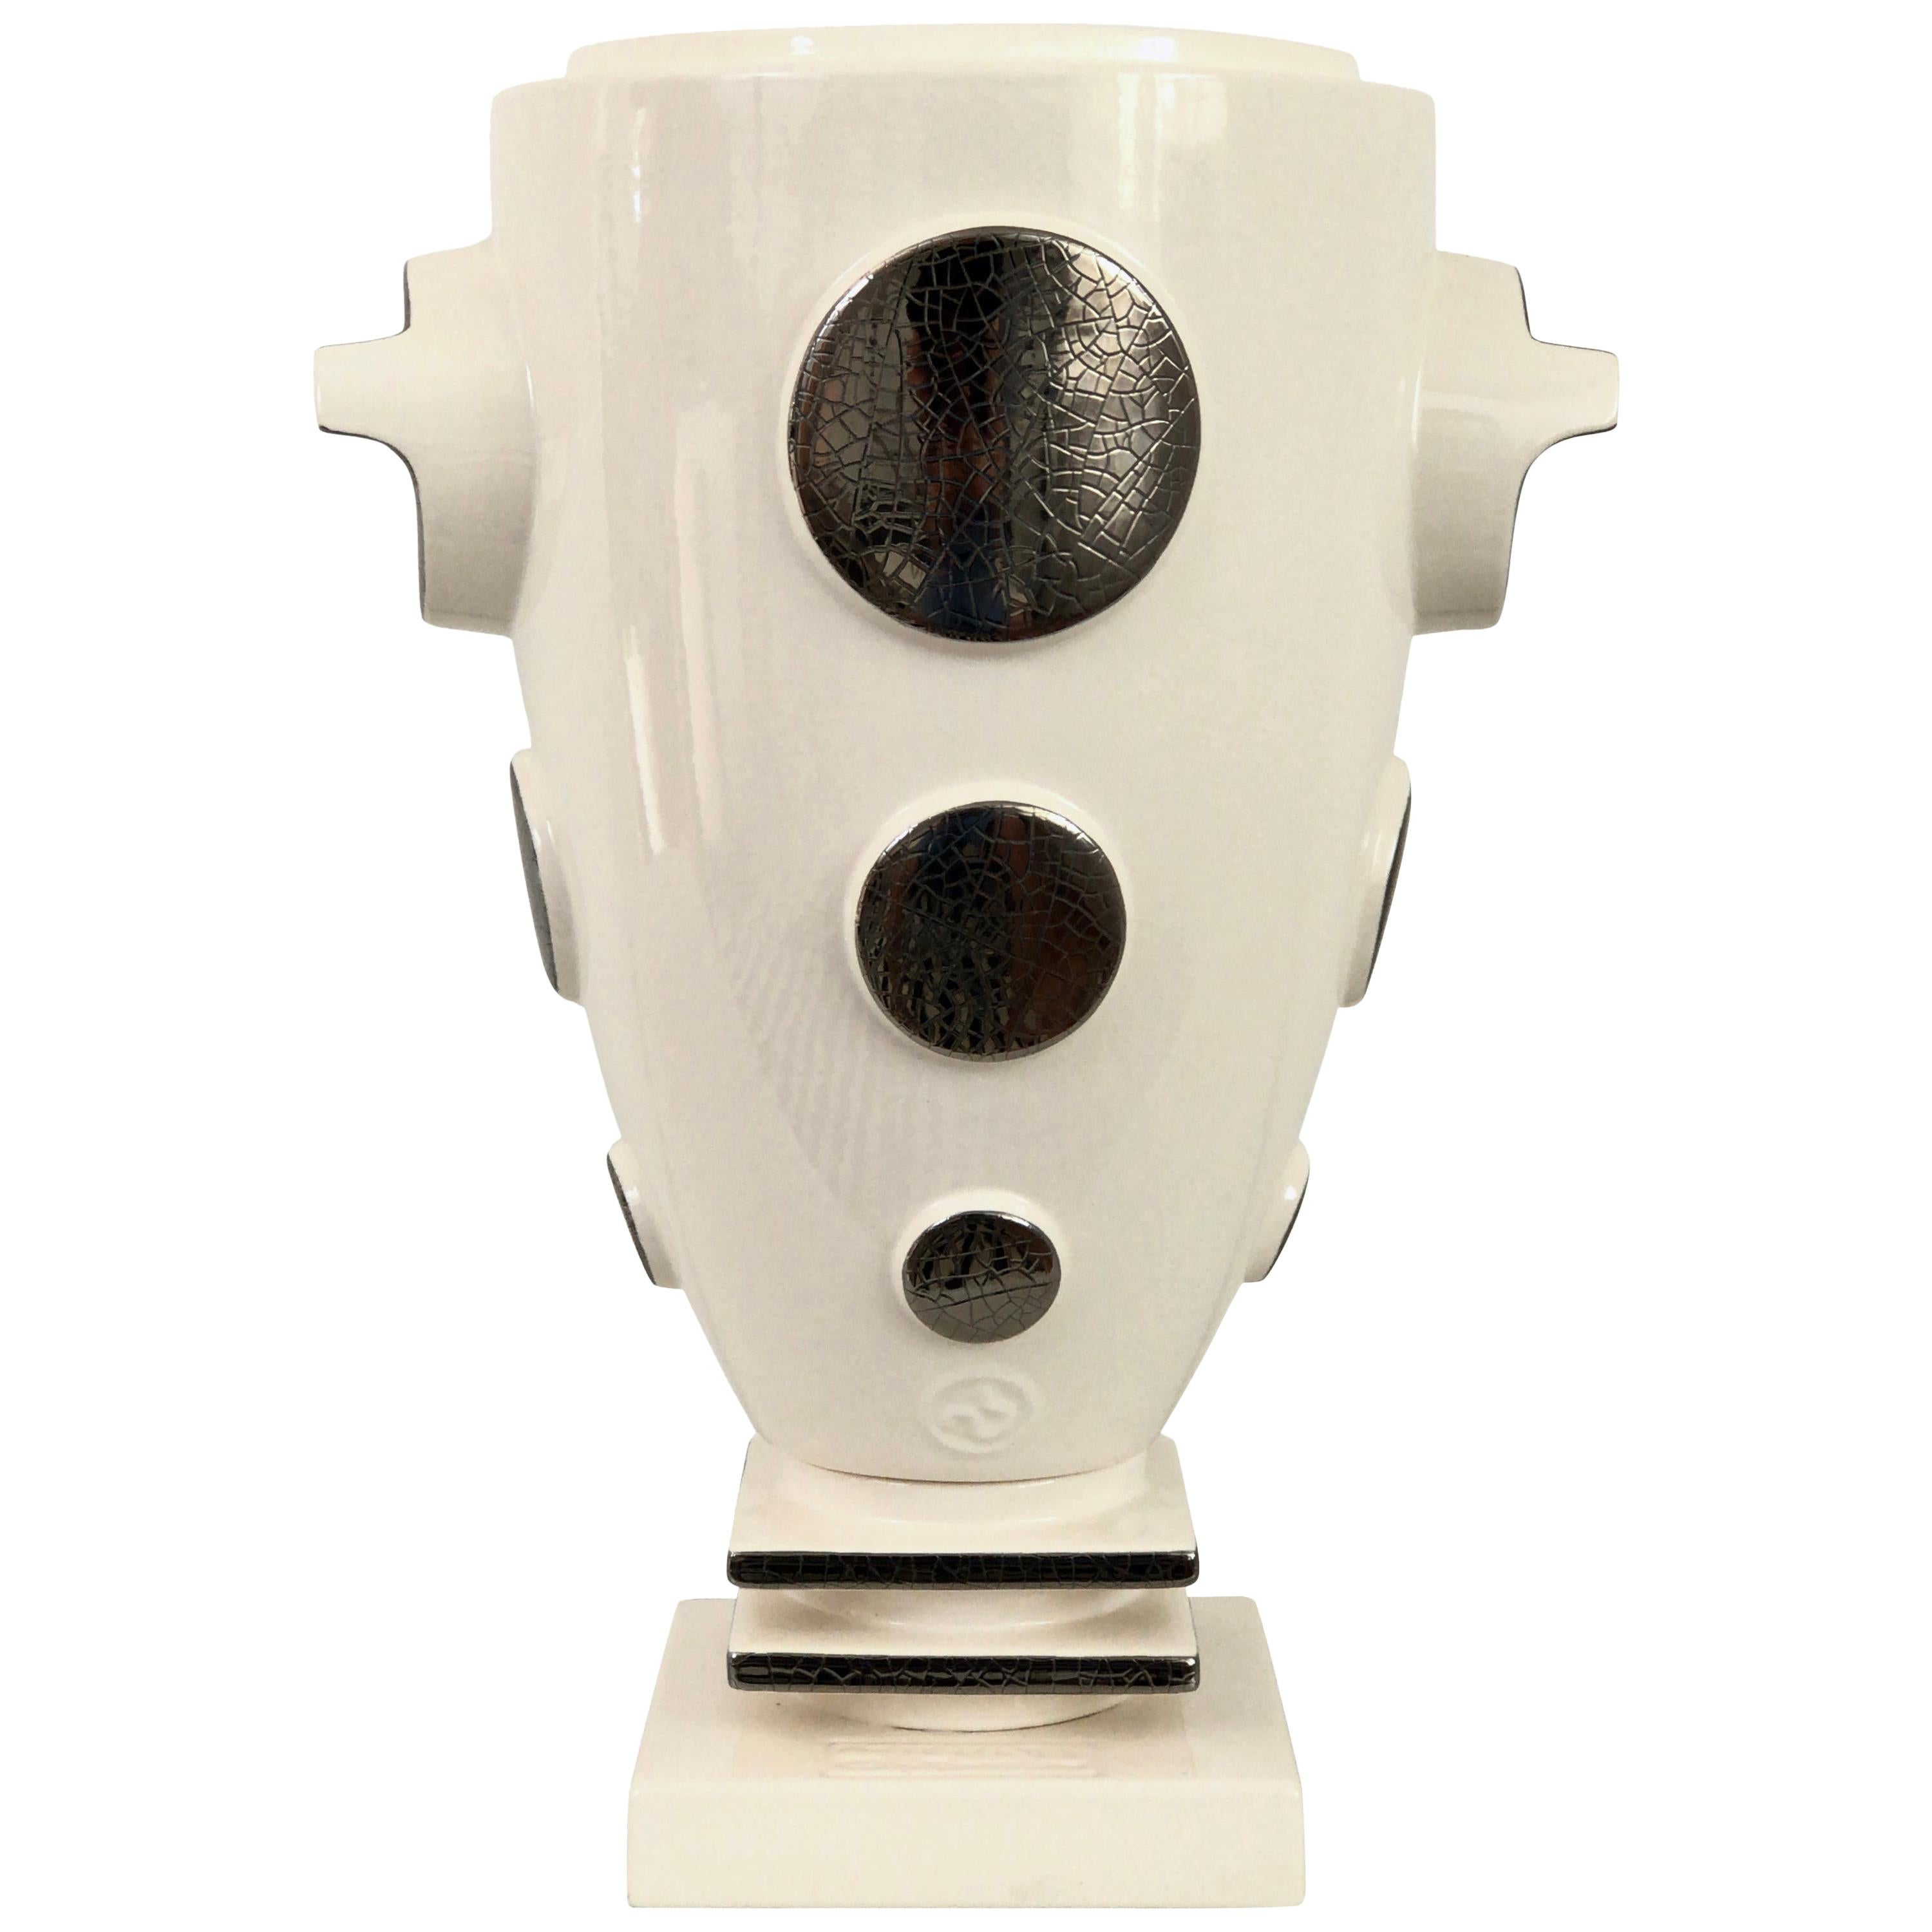 Anse White Glazed Ceramic Cup Vase from Emaux de Longwy